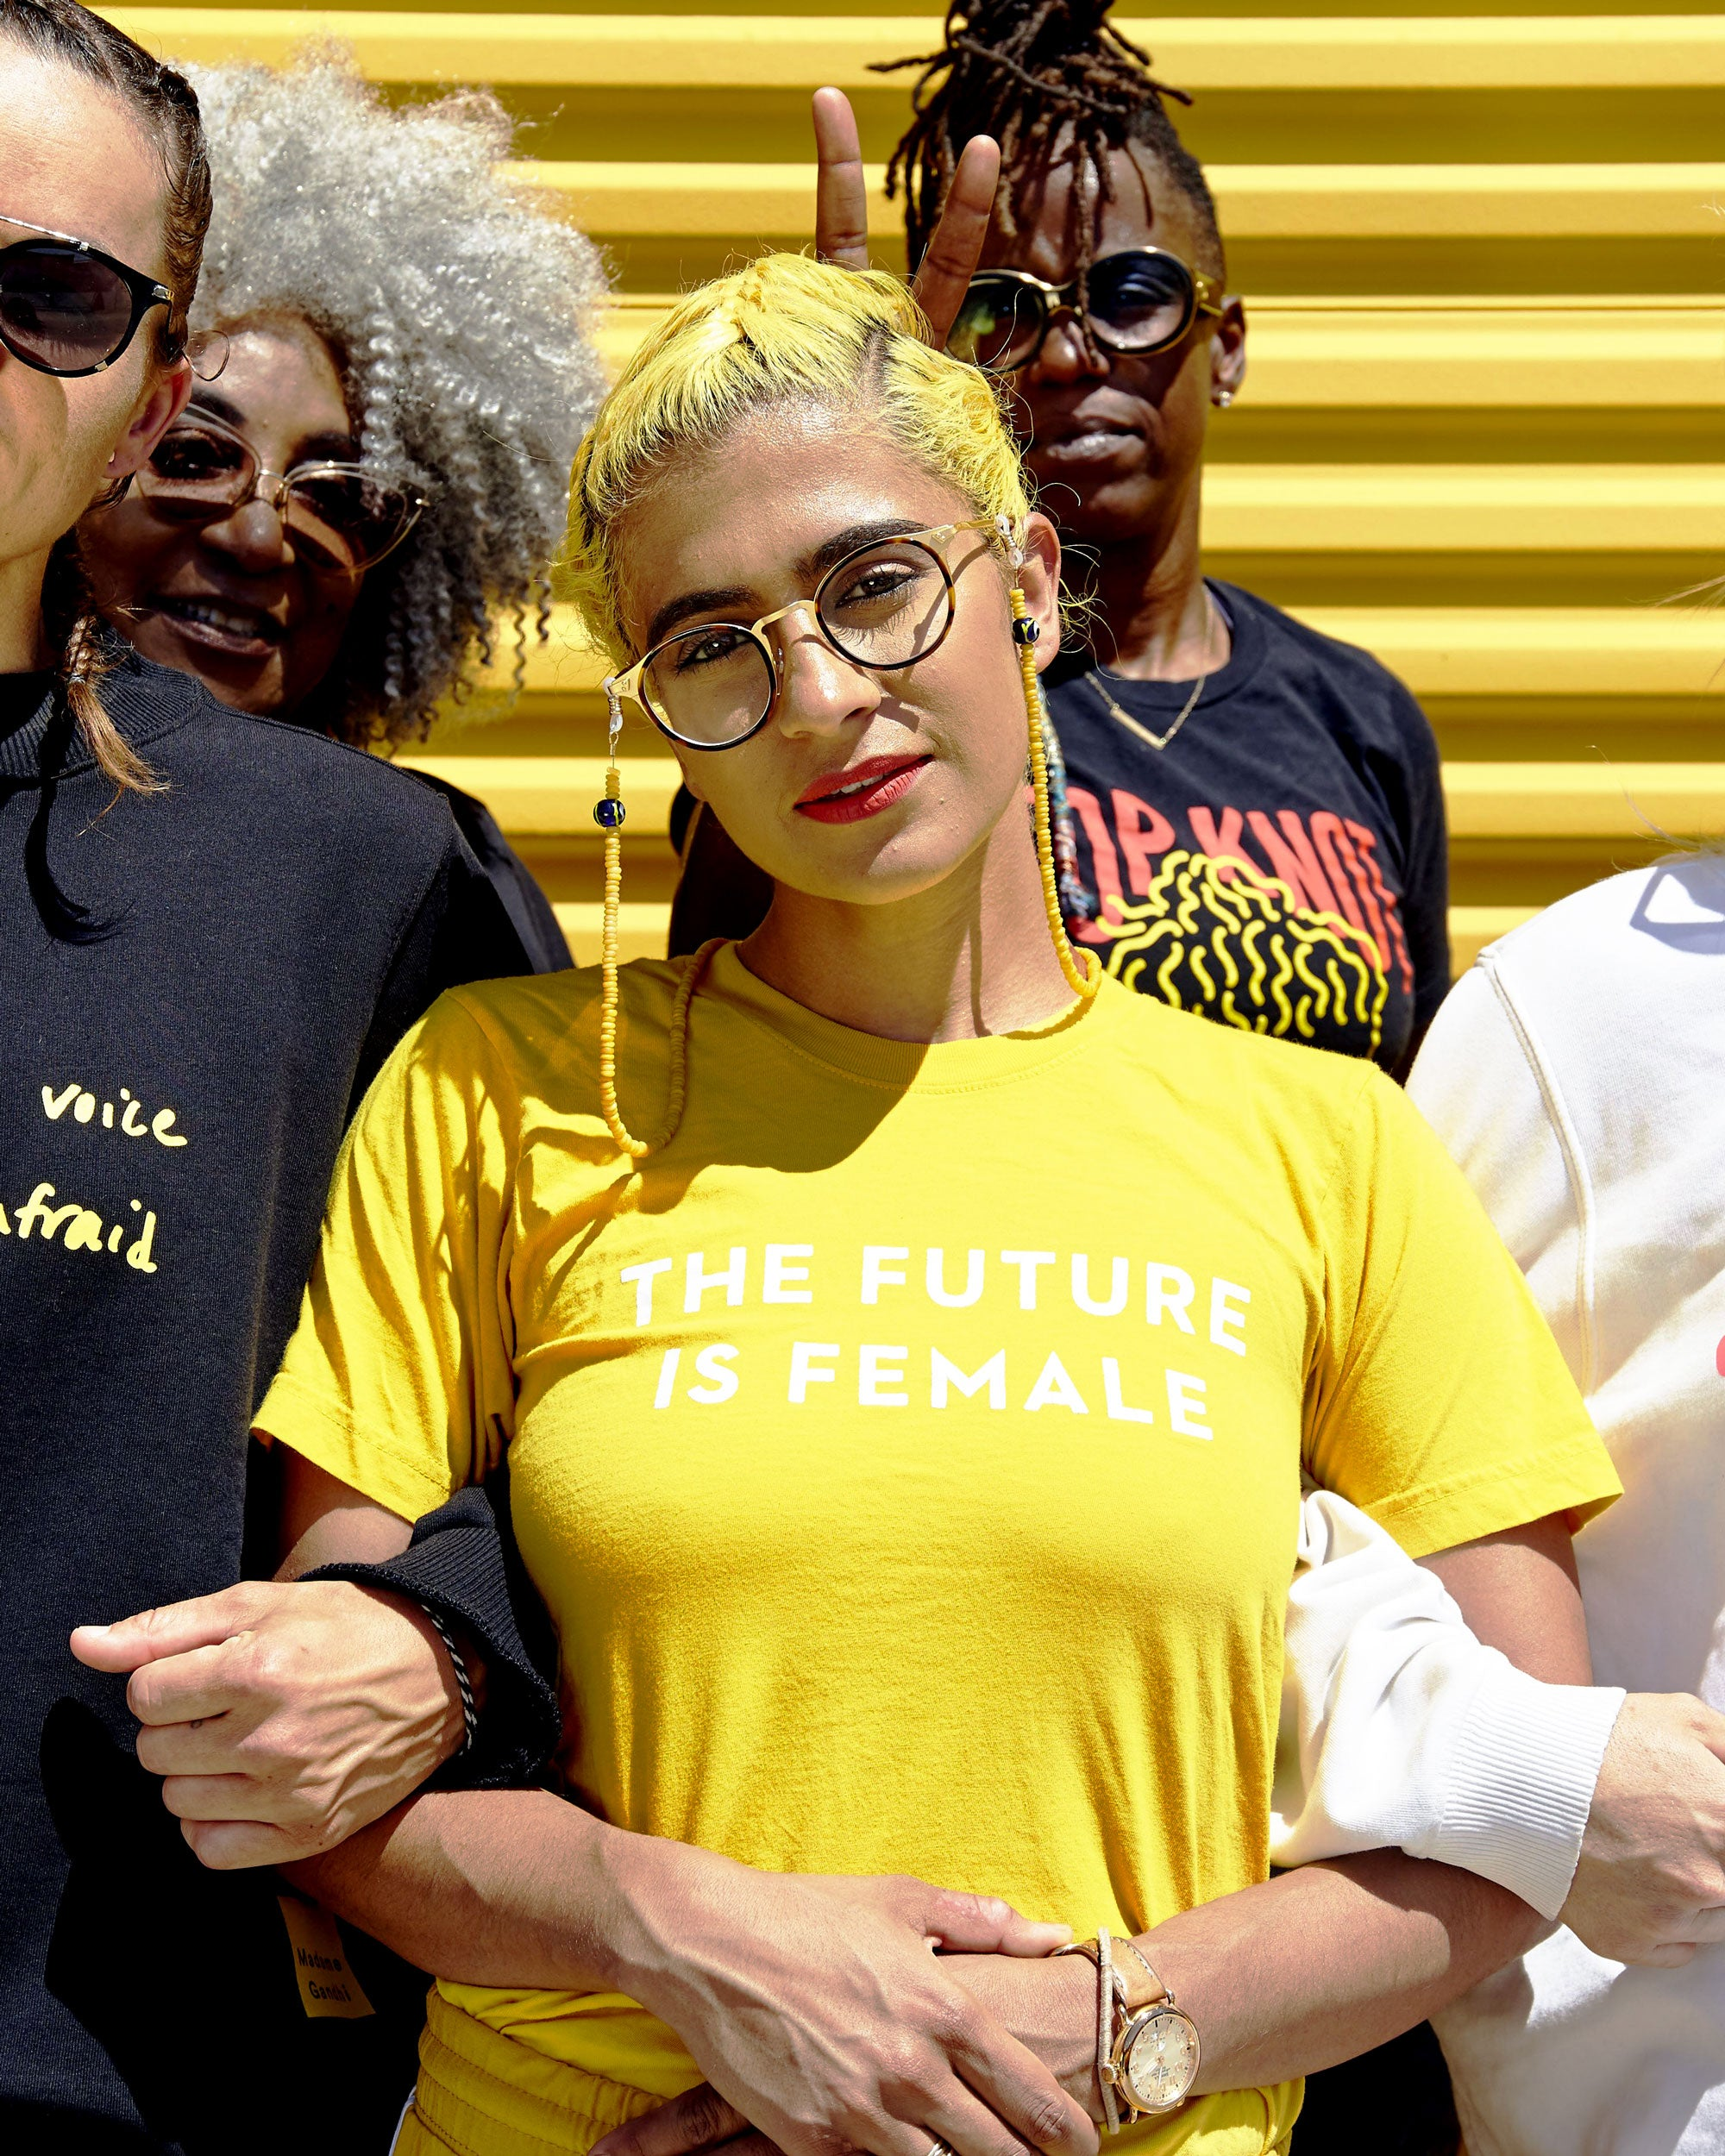 The Future is Female Shirt - Madame Gandhi Merch Shop